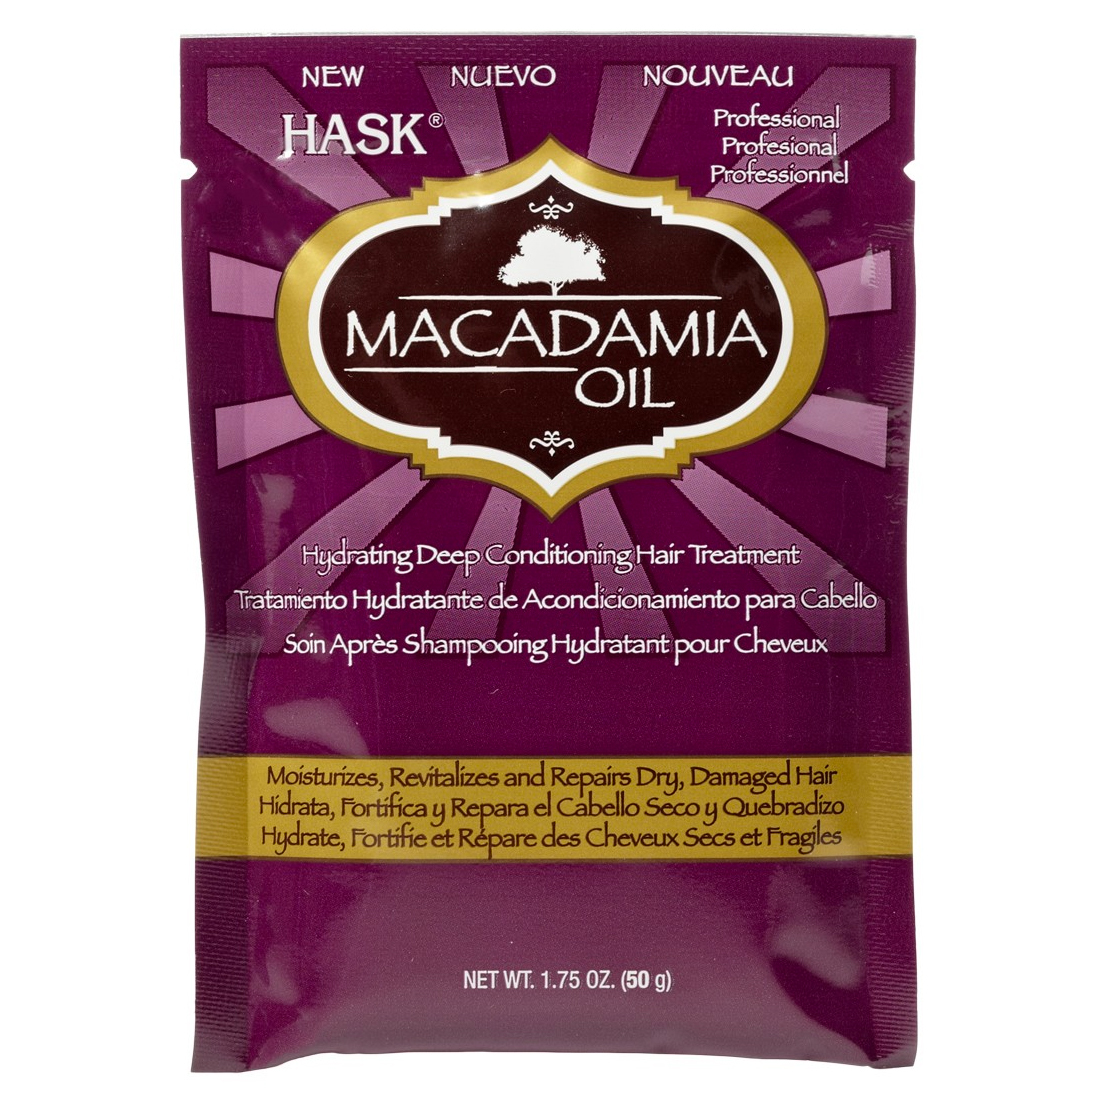 HASK Macadamia Oil Treatment Sachet 50g